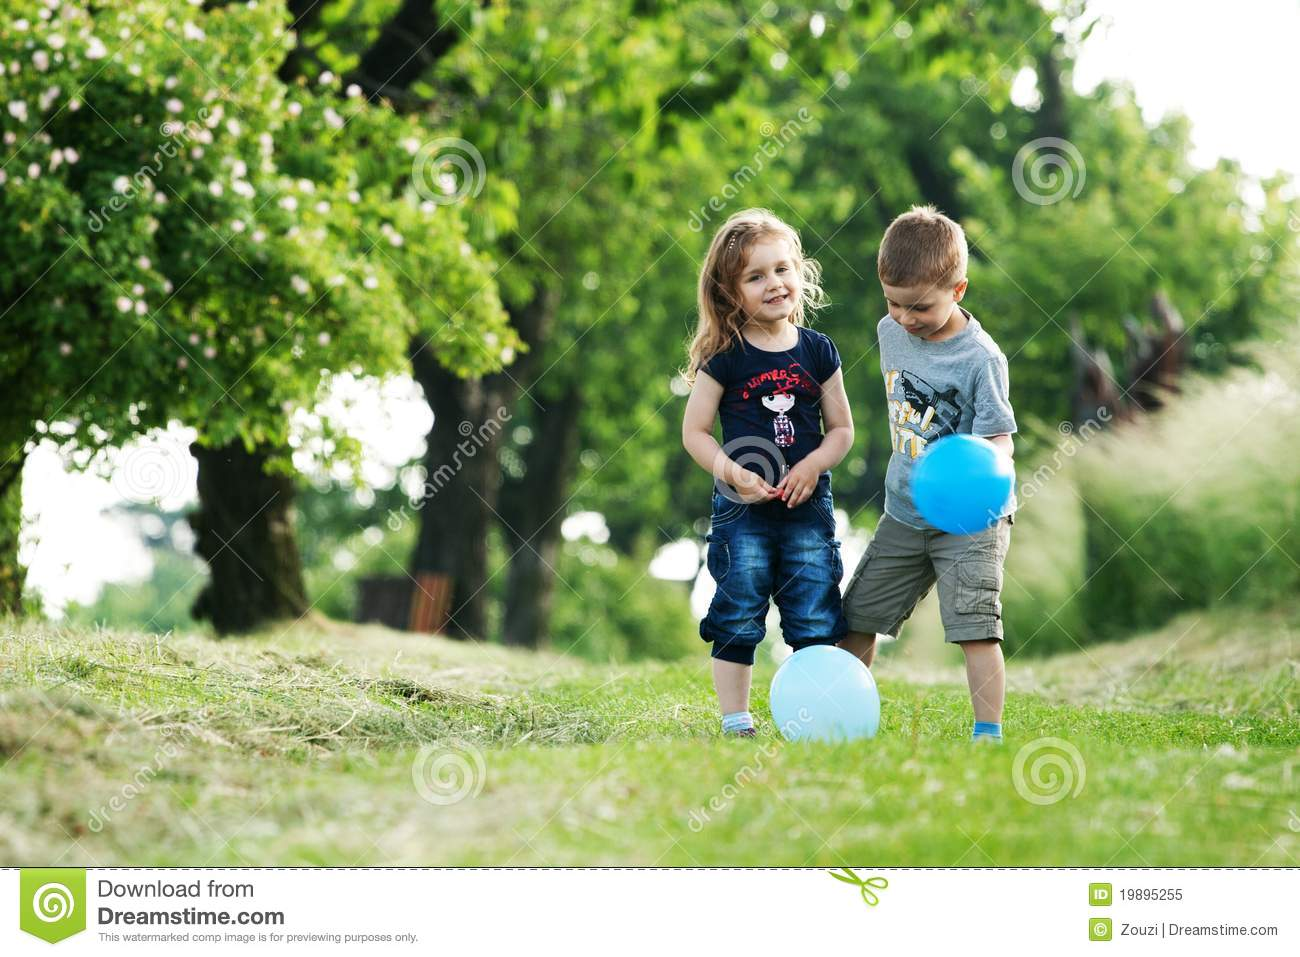 brother and sister outdoor portrait with balloons royalty free stock photo image 19895255. Black Bedroom Furniture Sets. Home Design Ideas